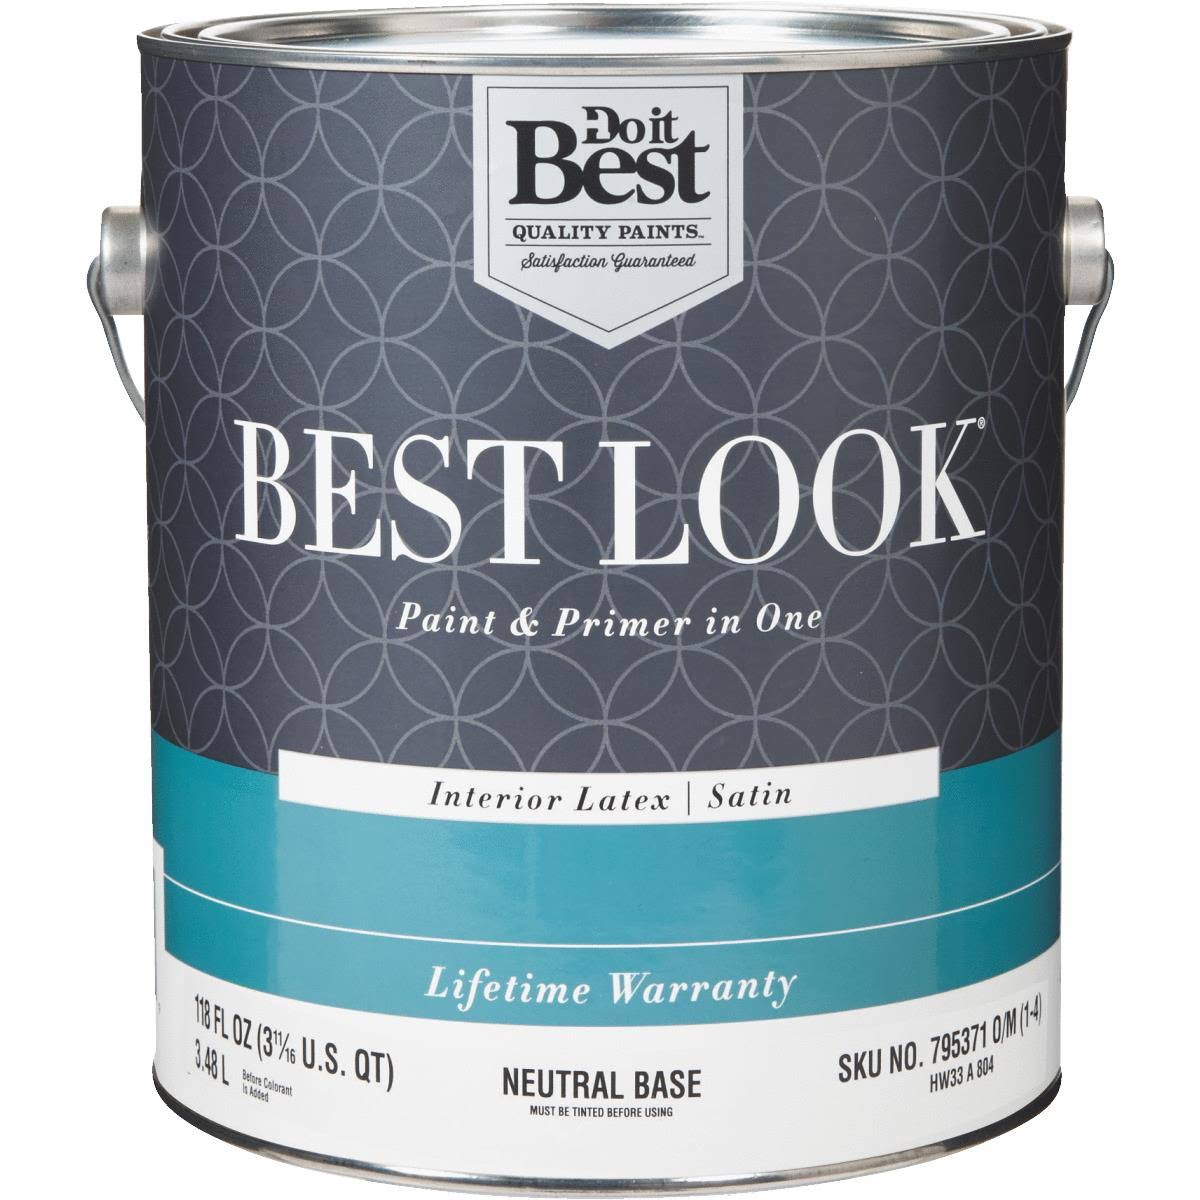 Best Look Latex Paint & Primer in One Satin Interior Wall Paint